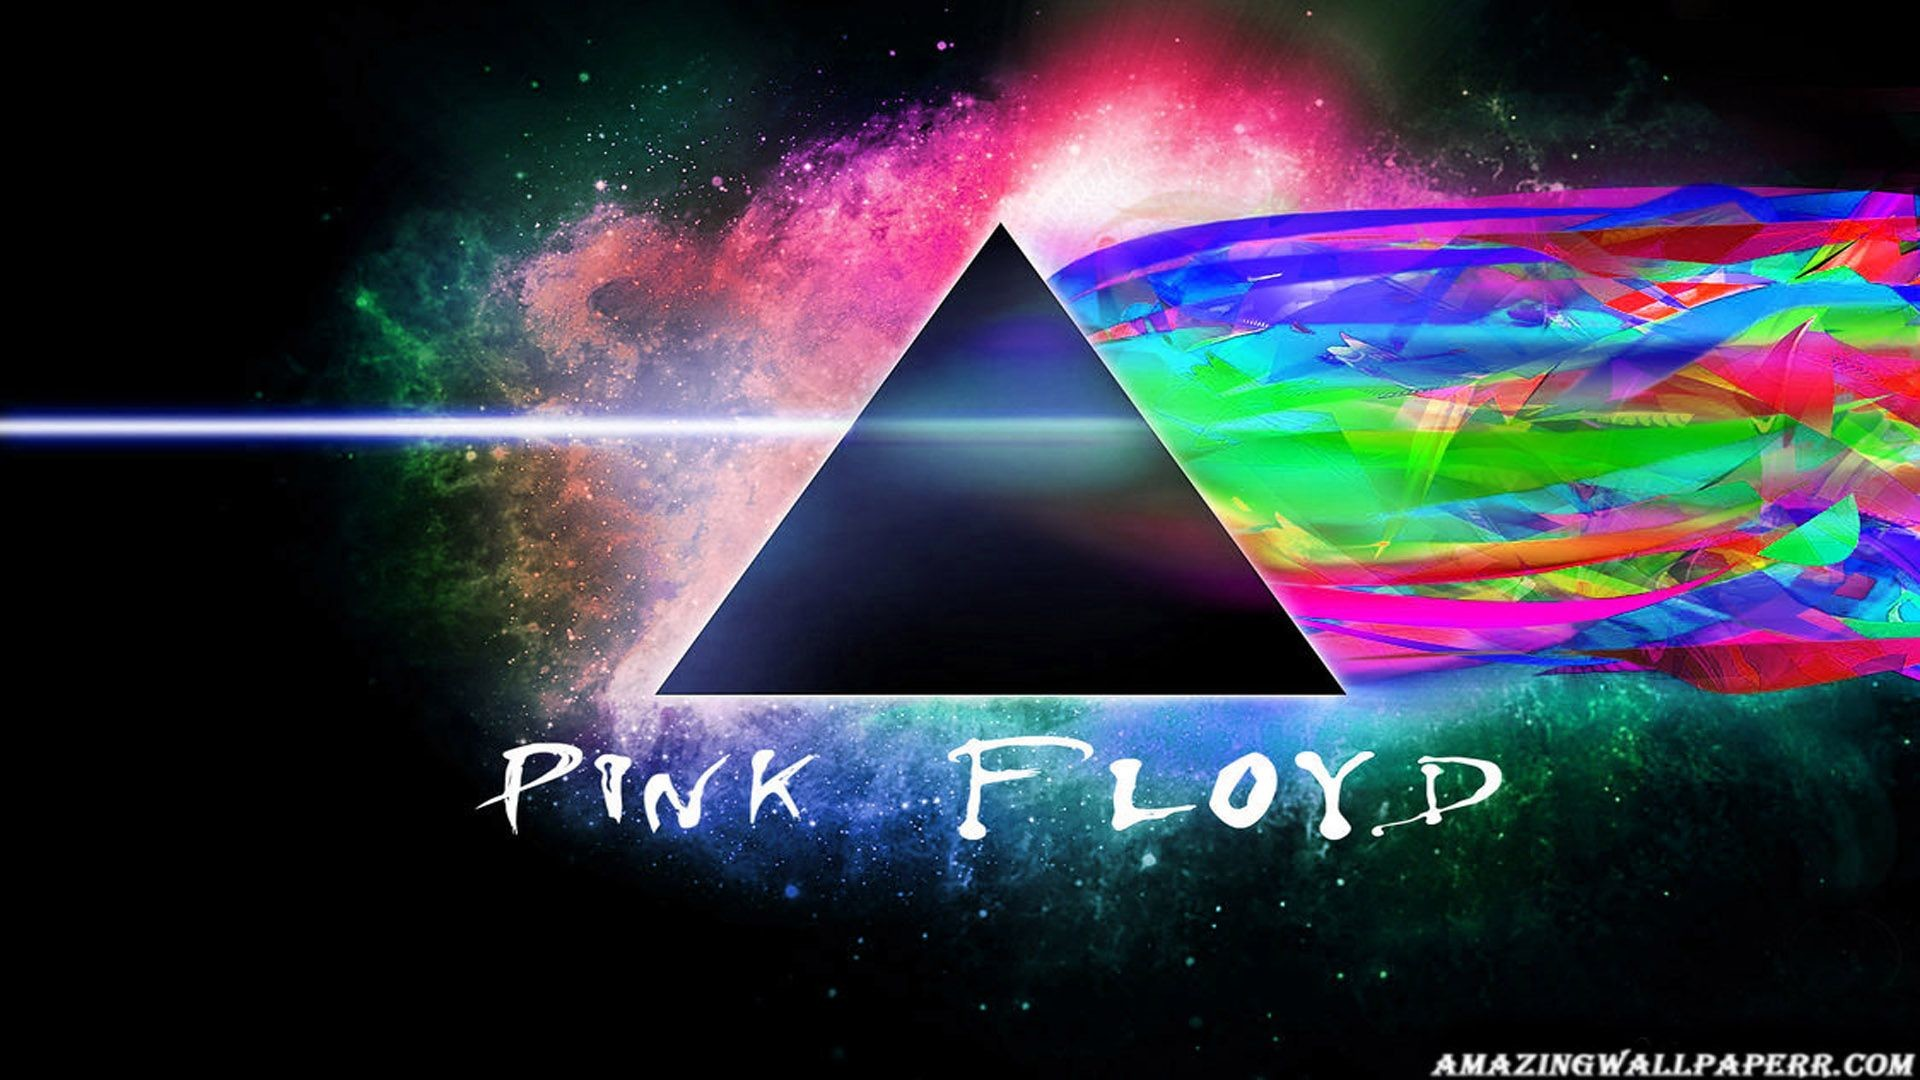 1920x1080 Abstract Pink Floyd Wallpaper - Amazing Wallpaper